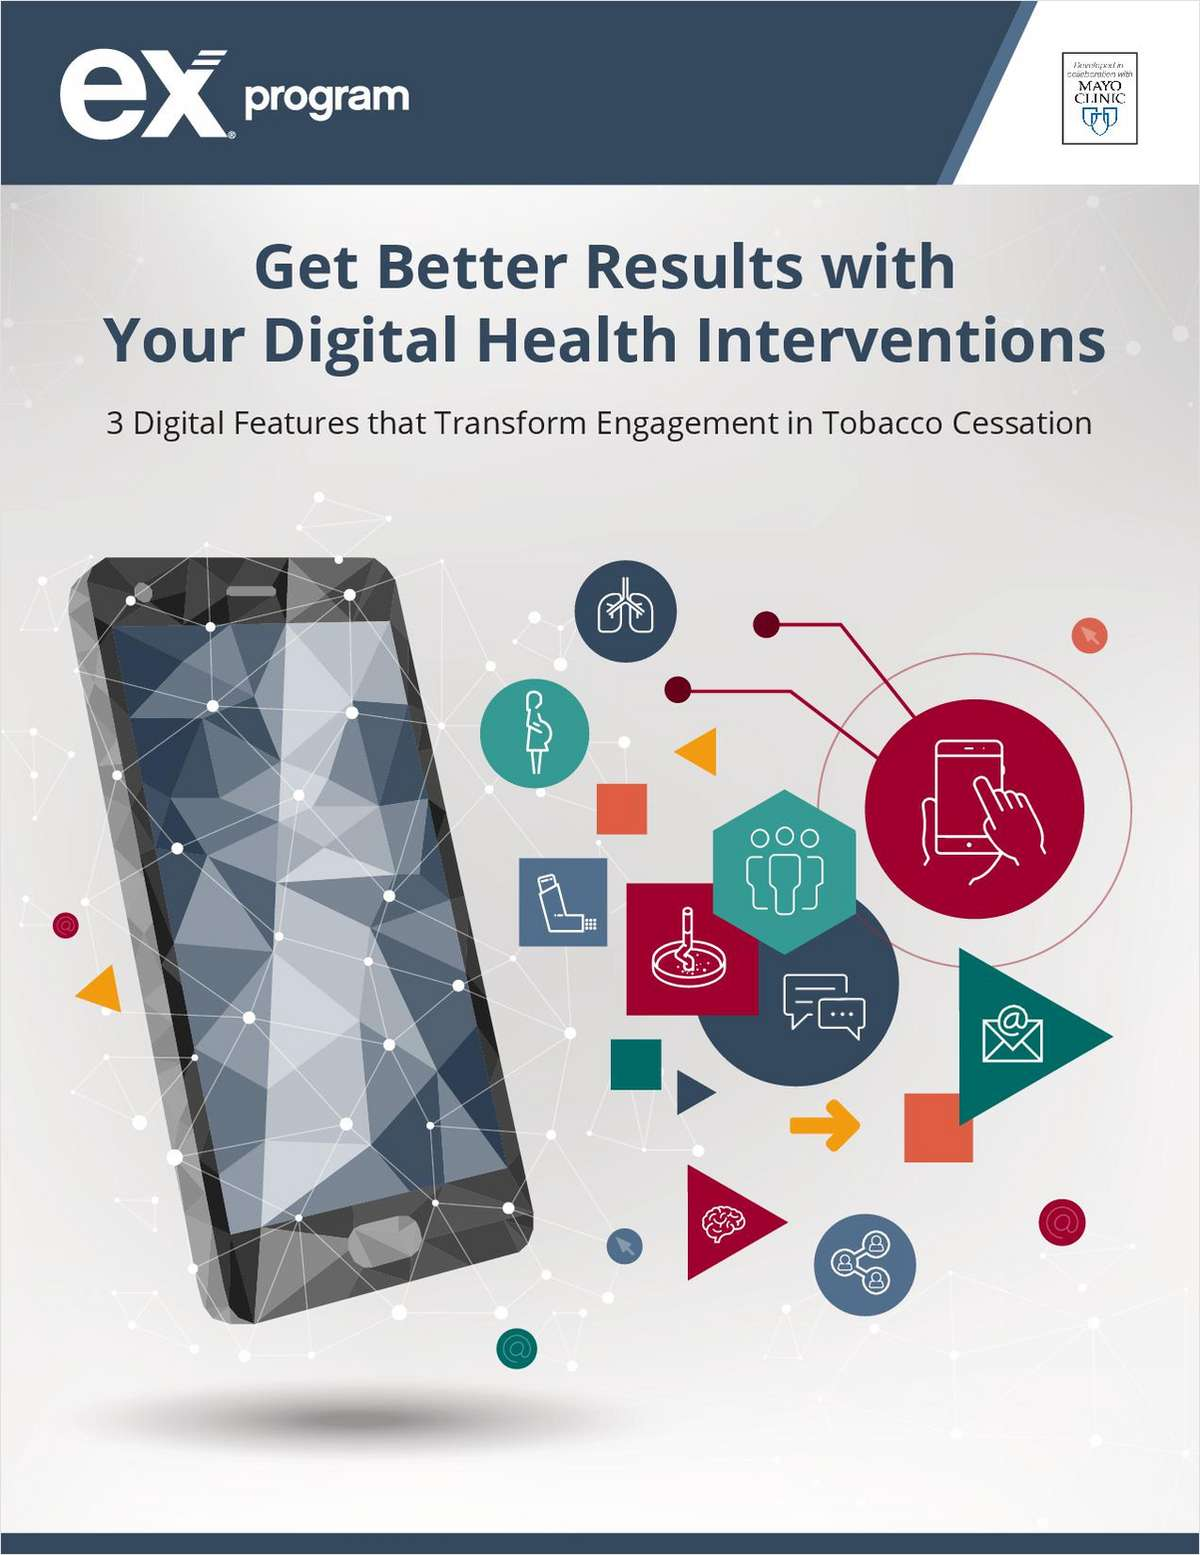 Get Better Results with Your Digital Health Interventions